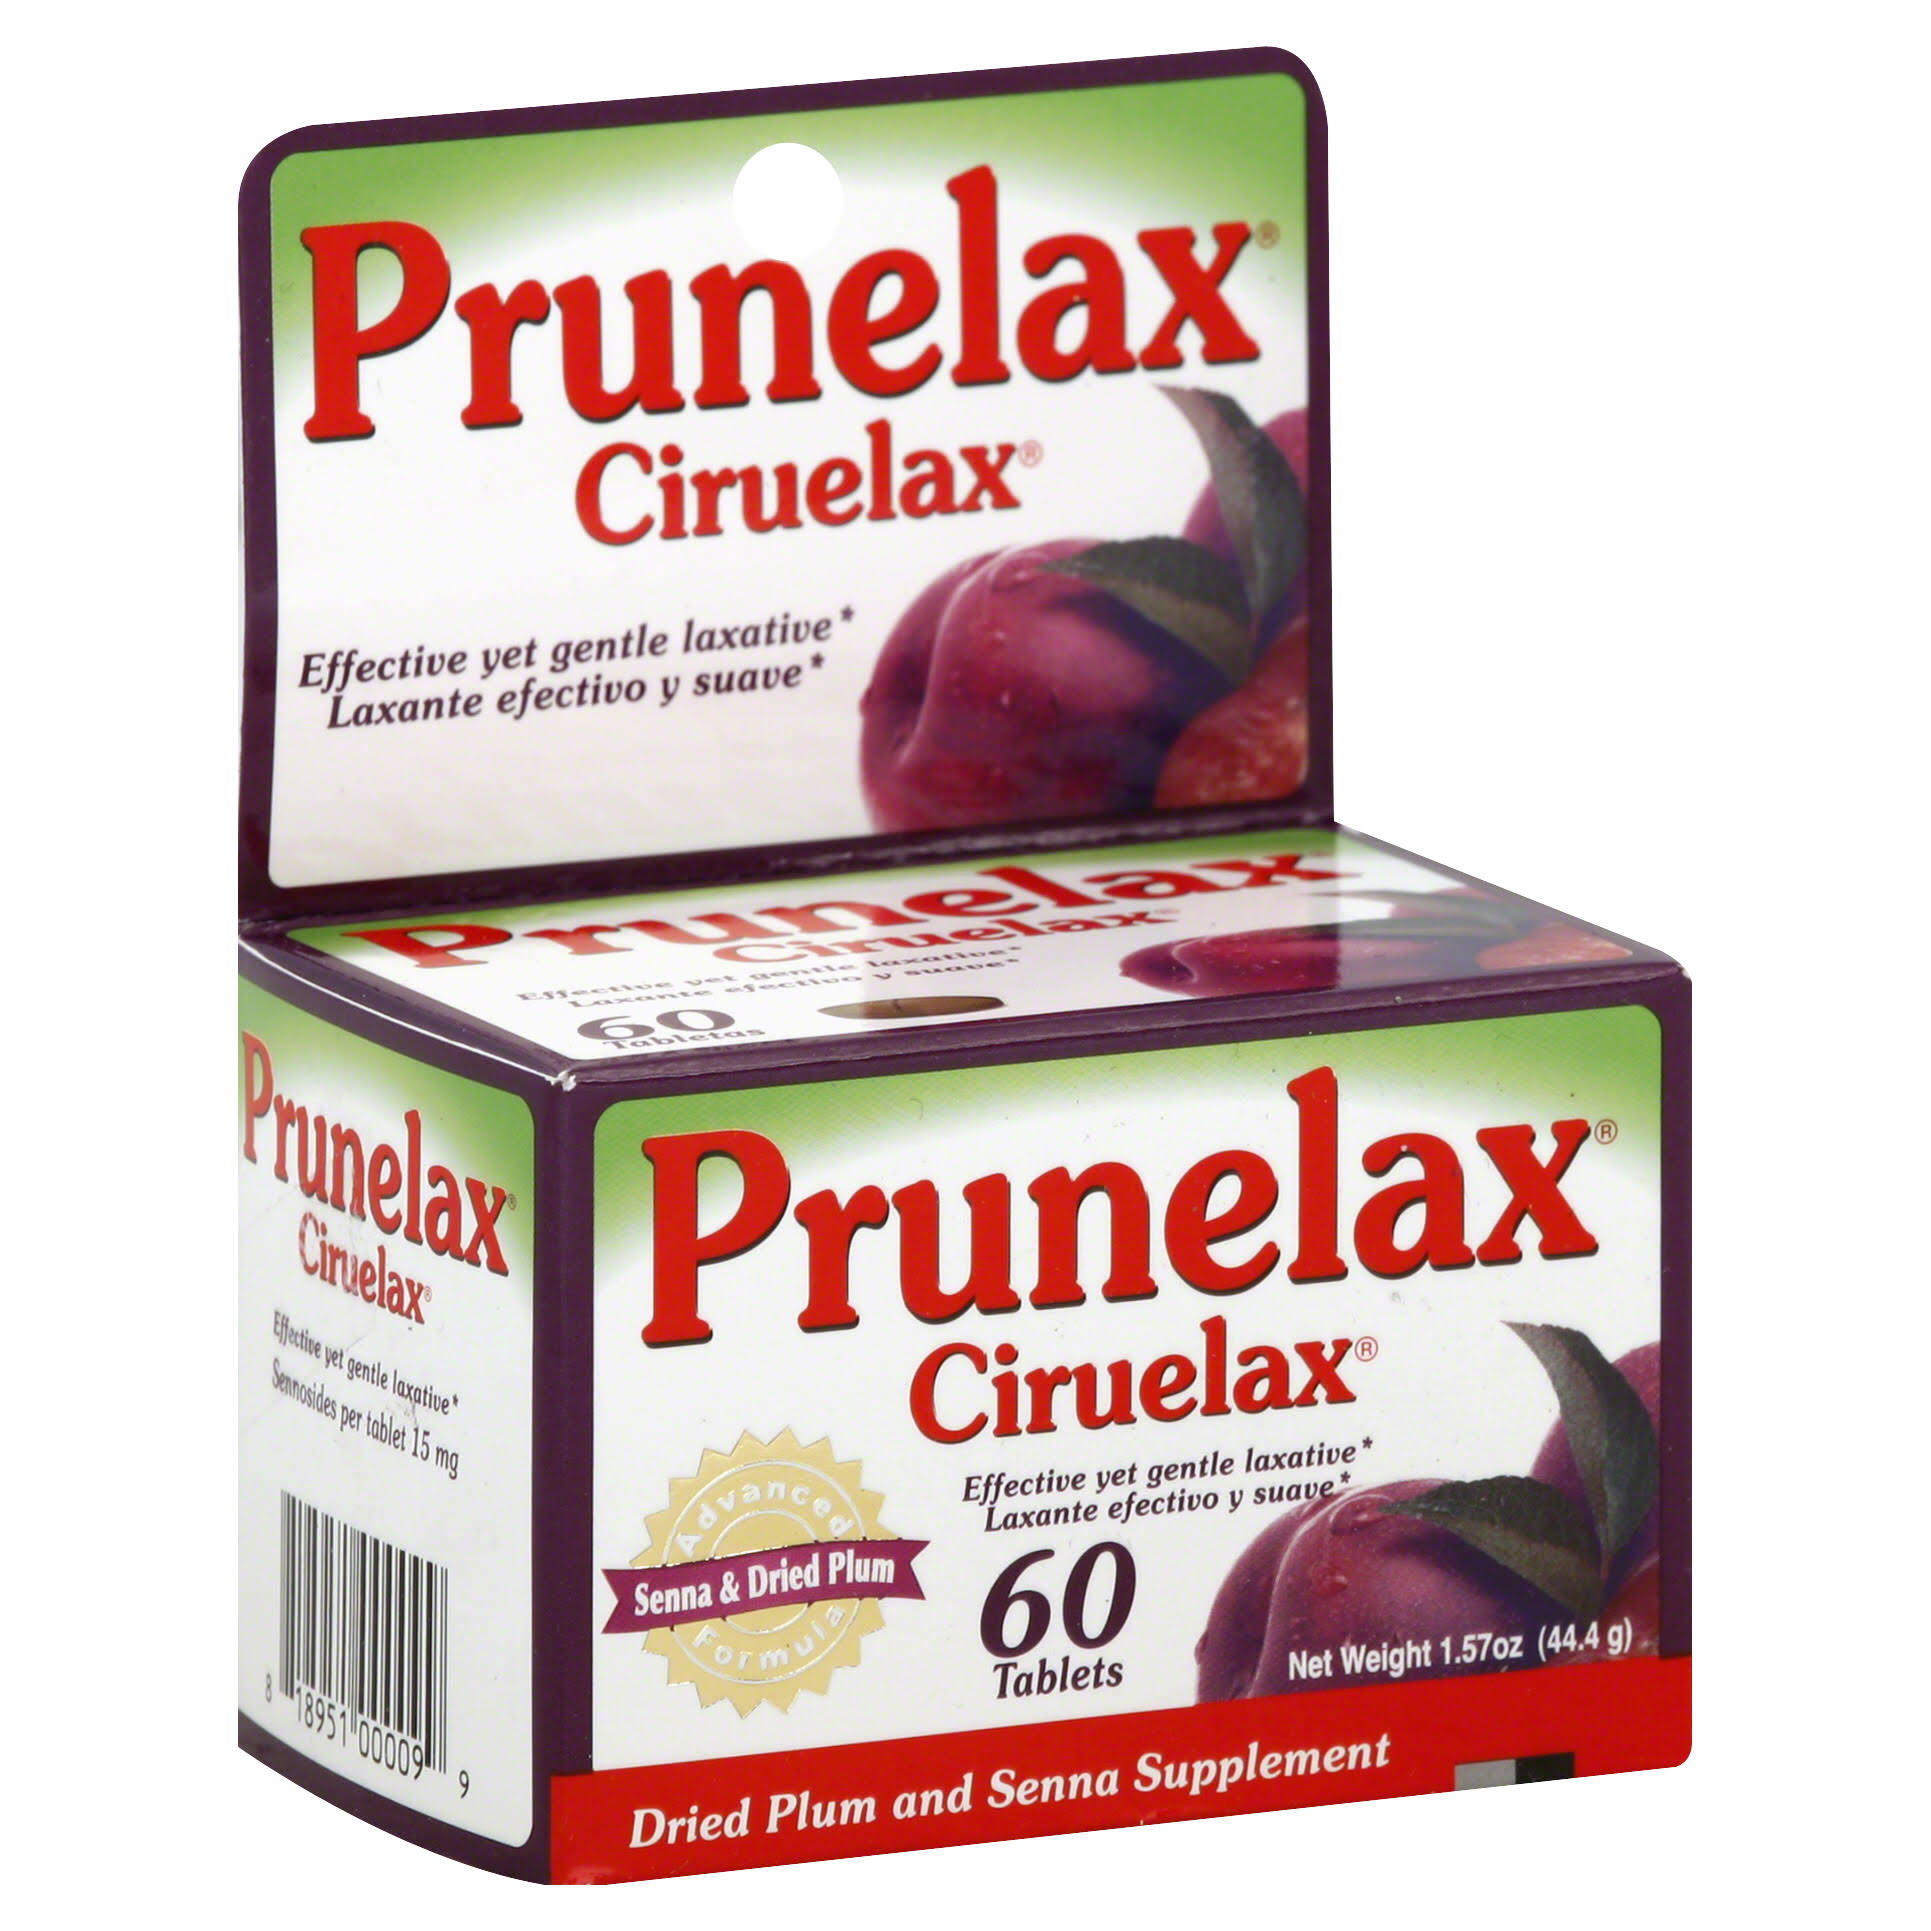 Prunelax Ciruelax Tablets - 60ct